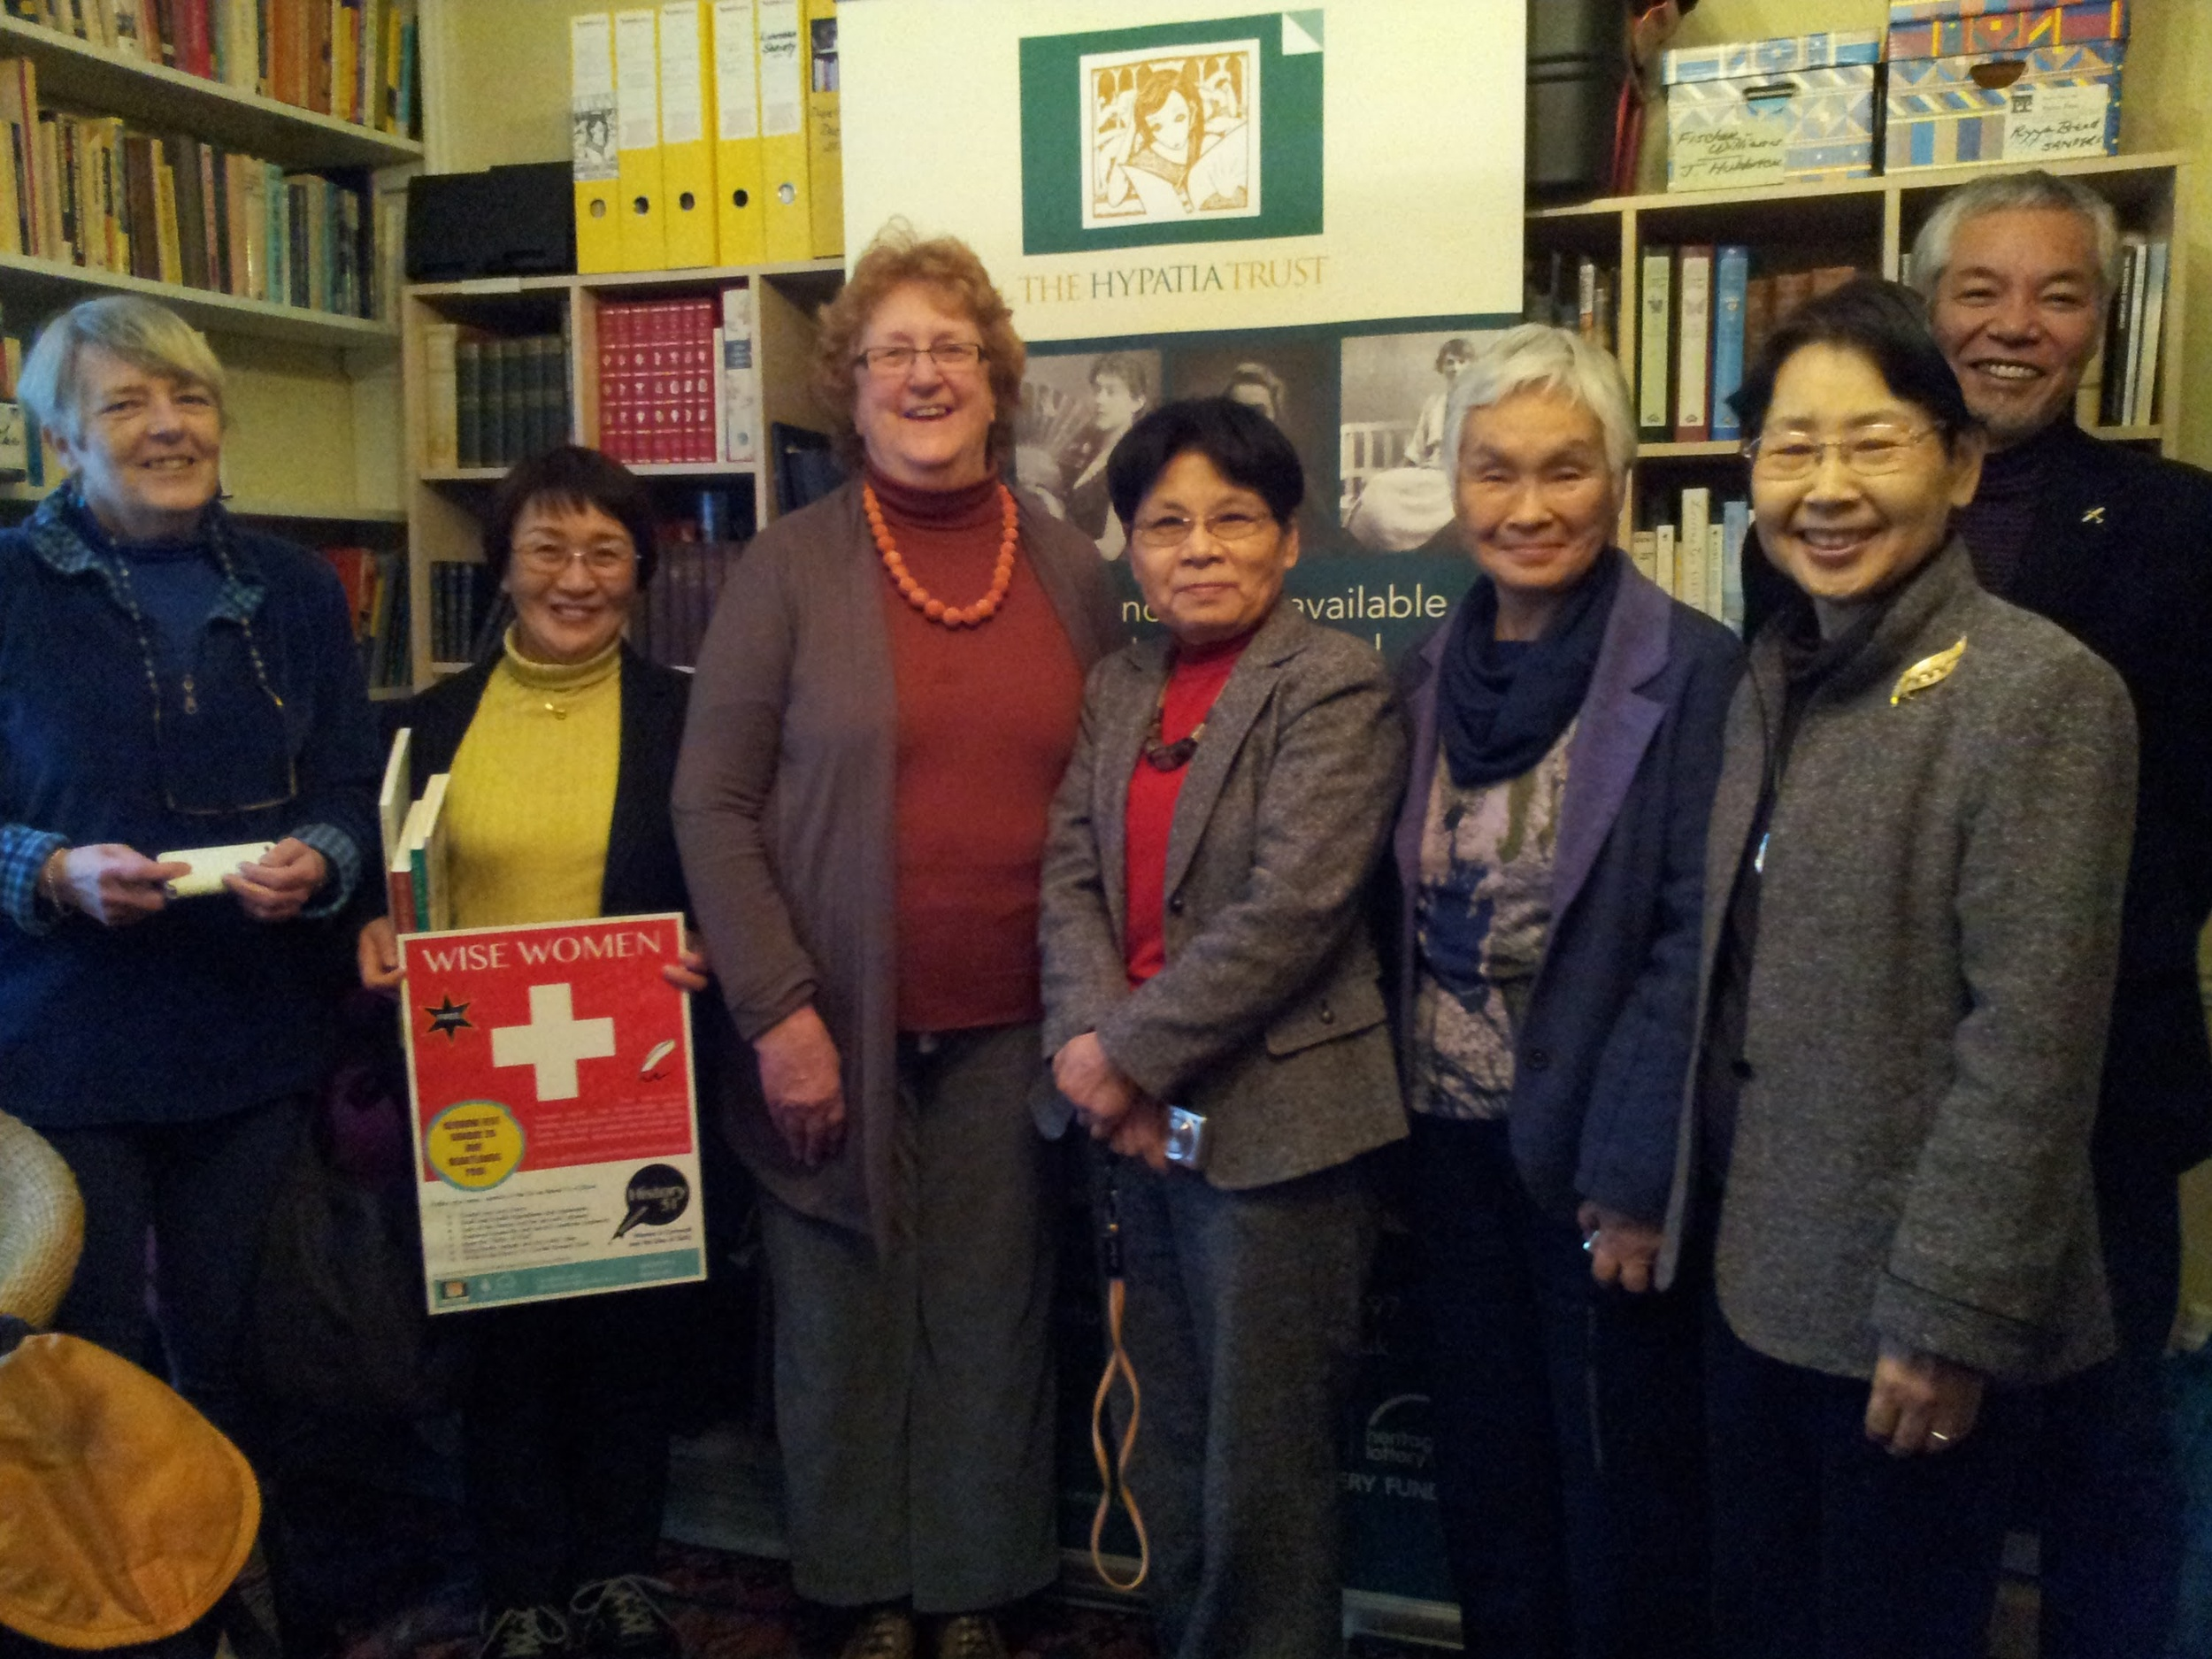 A visit from Japan (Left to right): Polly Attwood, Emi Nishiyama, Melissa Hardie, Mrsrko Hioki, Etsuko Yasukawa, Masako Hioki and Toshiro Sato.